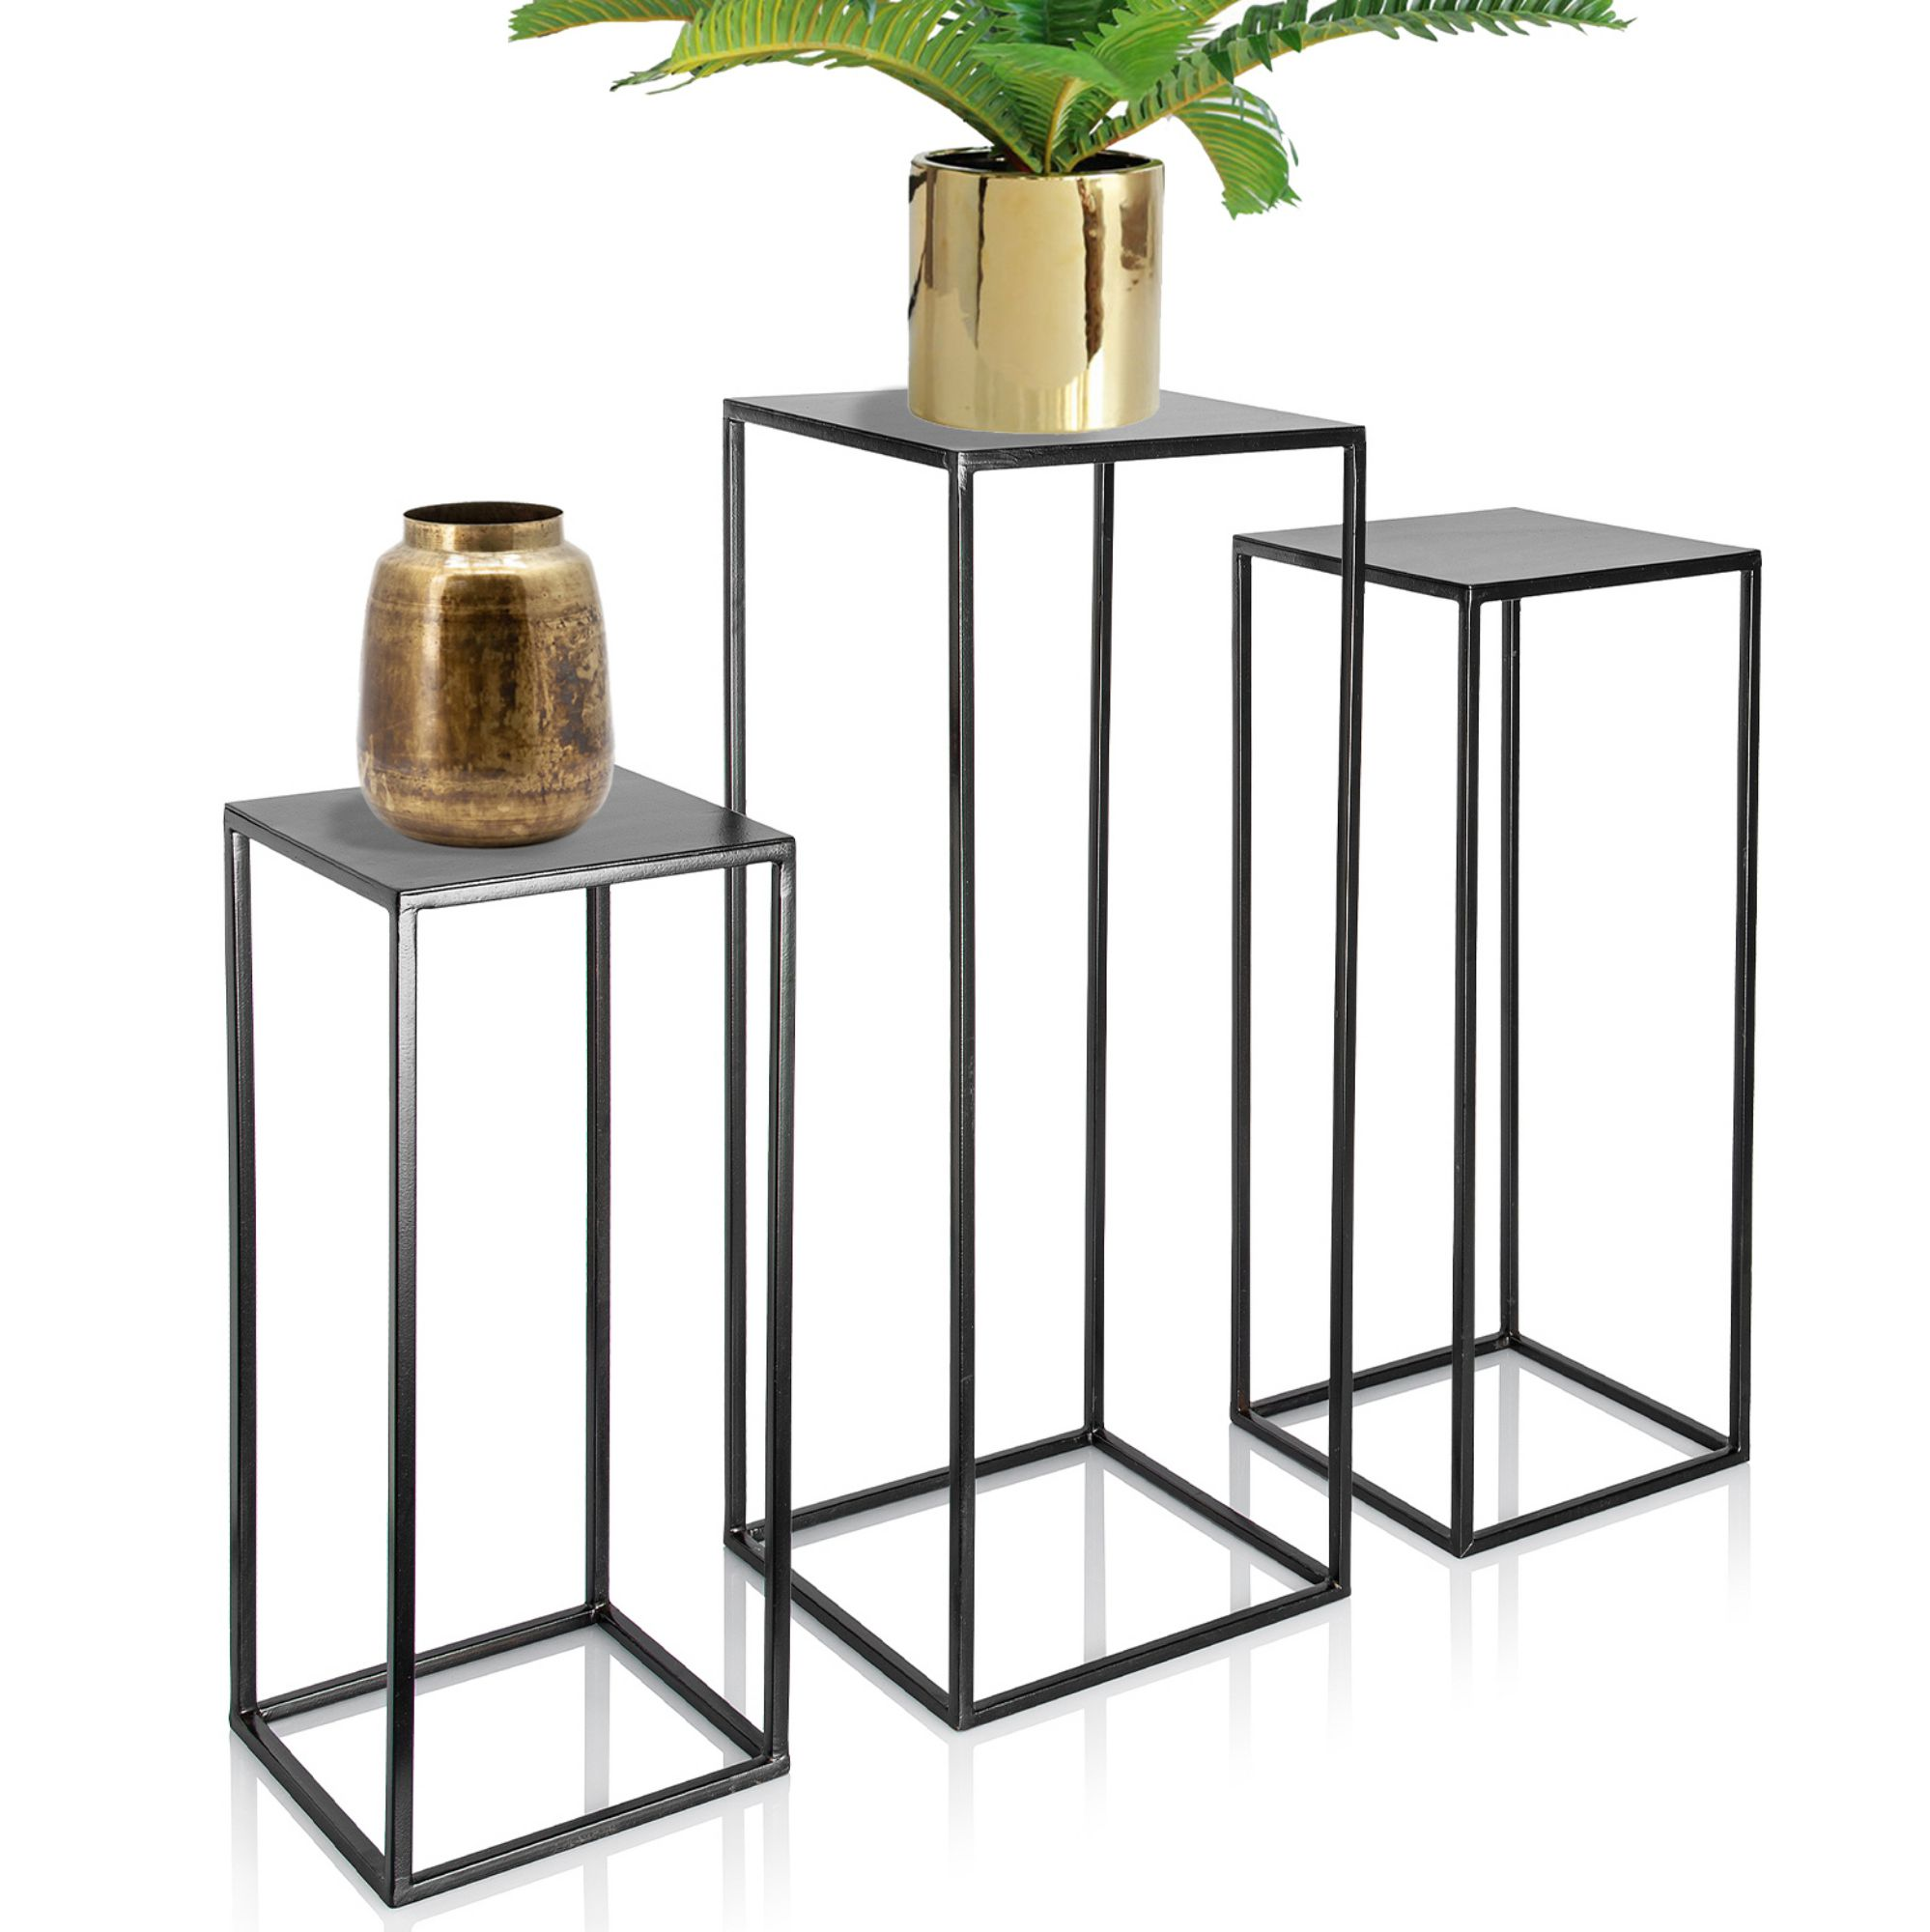 Trio Metal Plant Stand With High Square Rack Flower Holder Kimisty